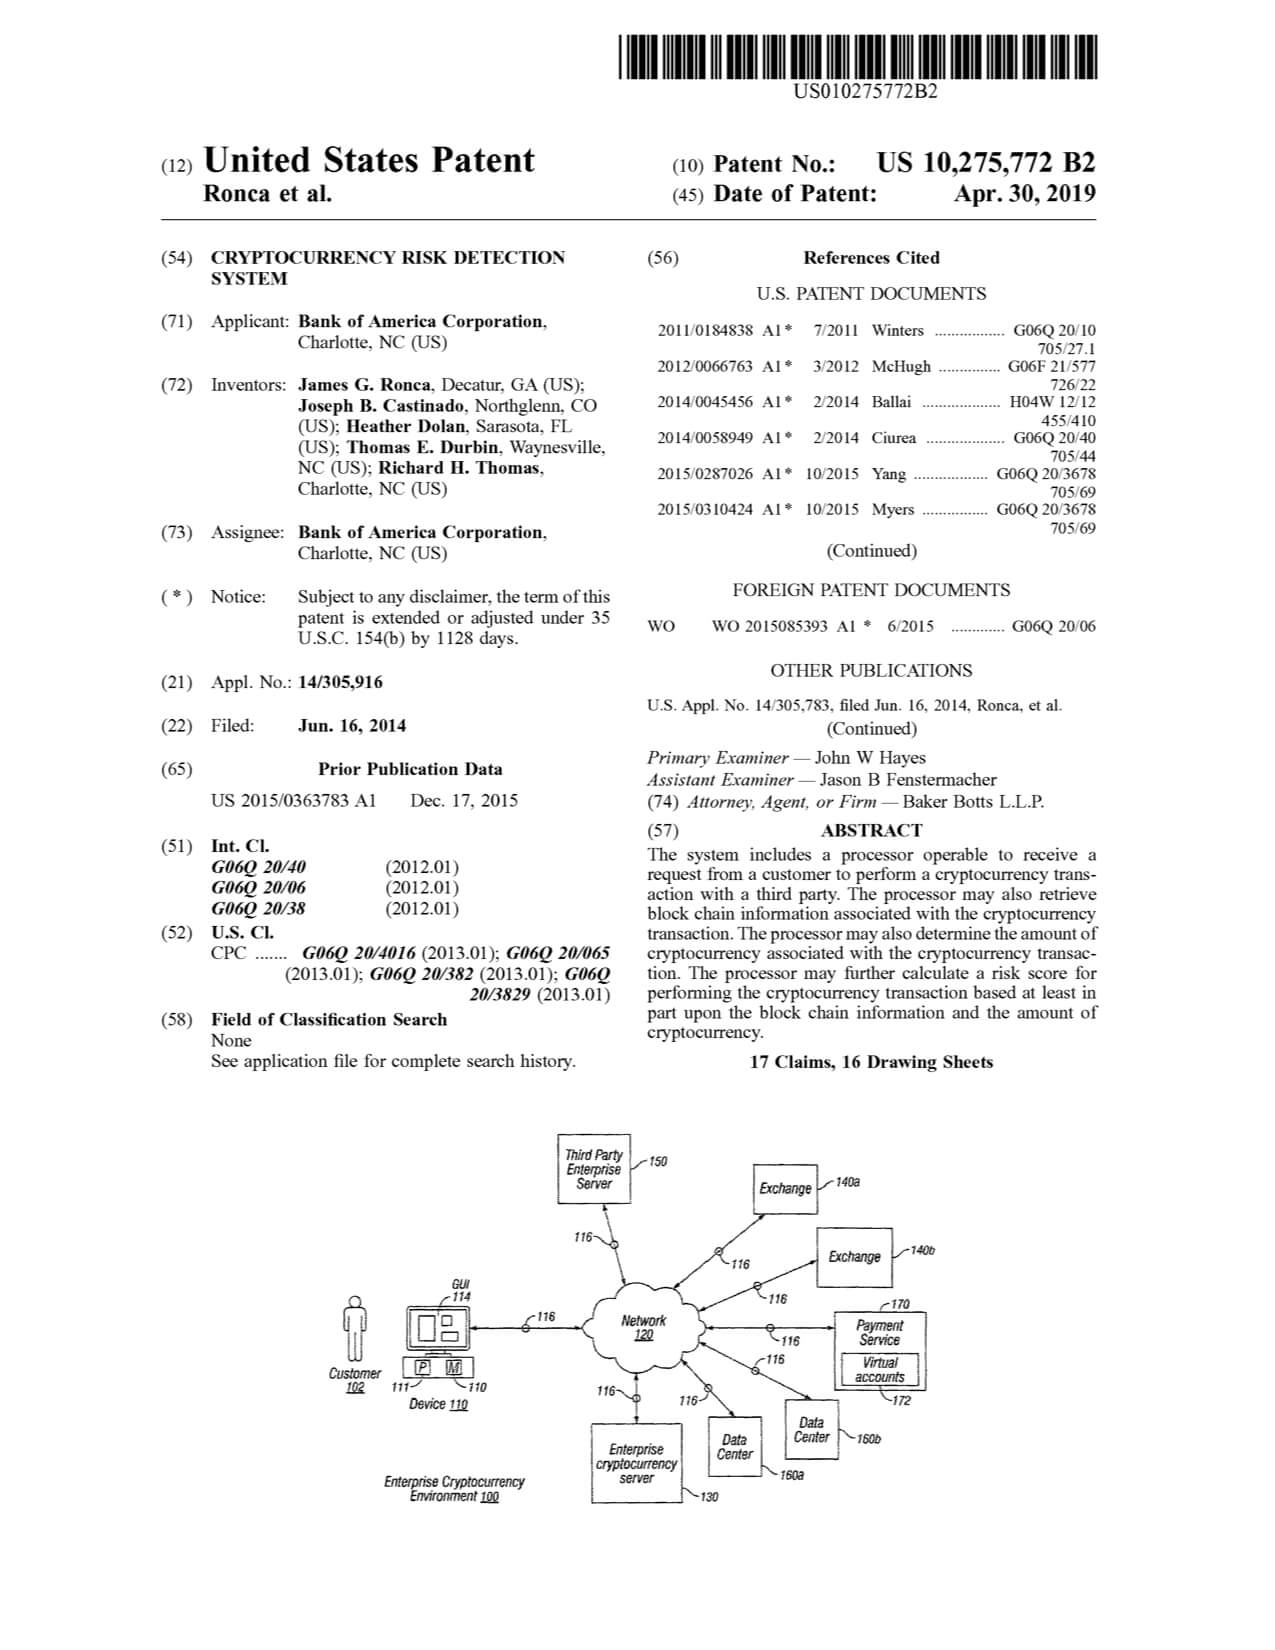 bank-of-america-cryptocurrency-patent